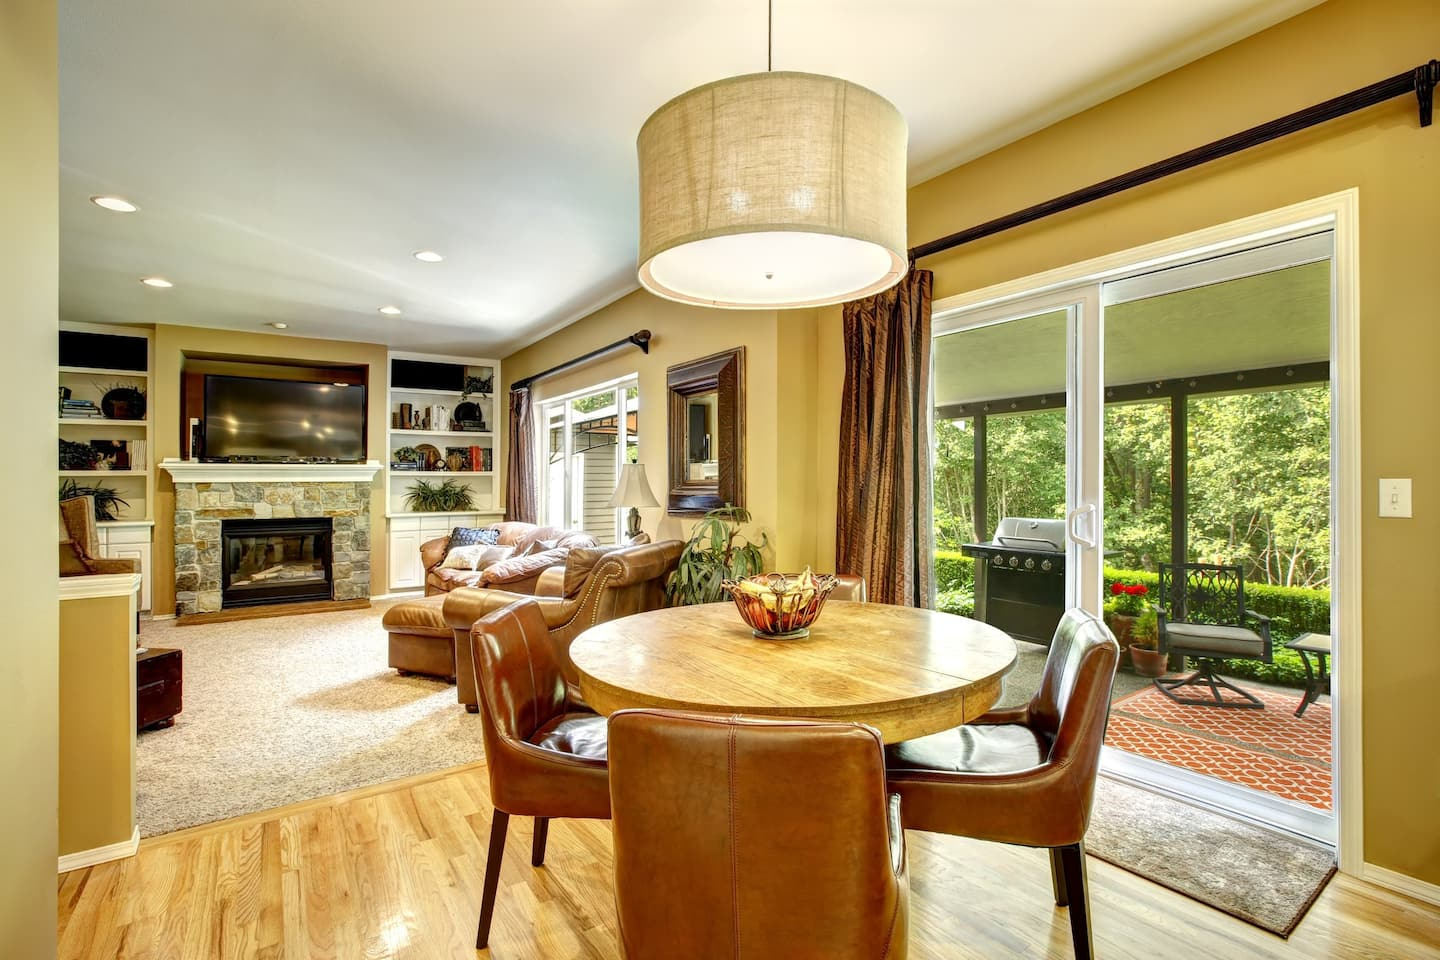 A tan-colored dining room with a family room in the background